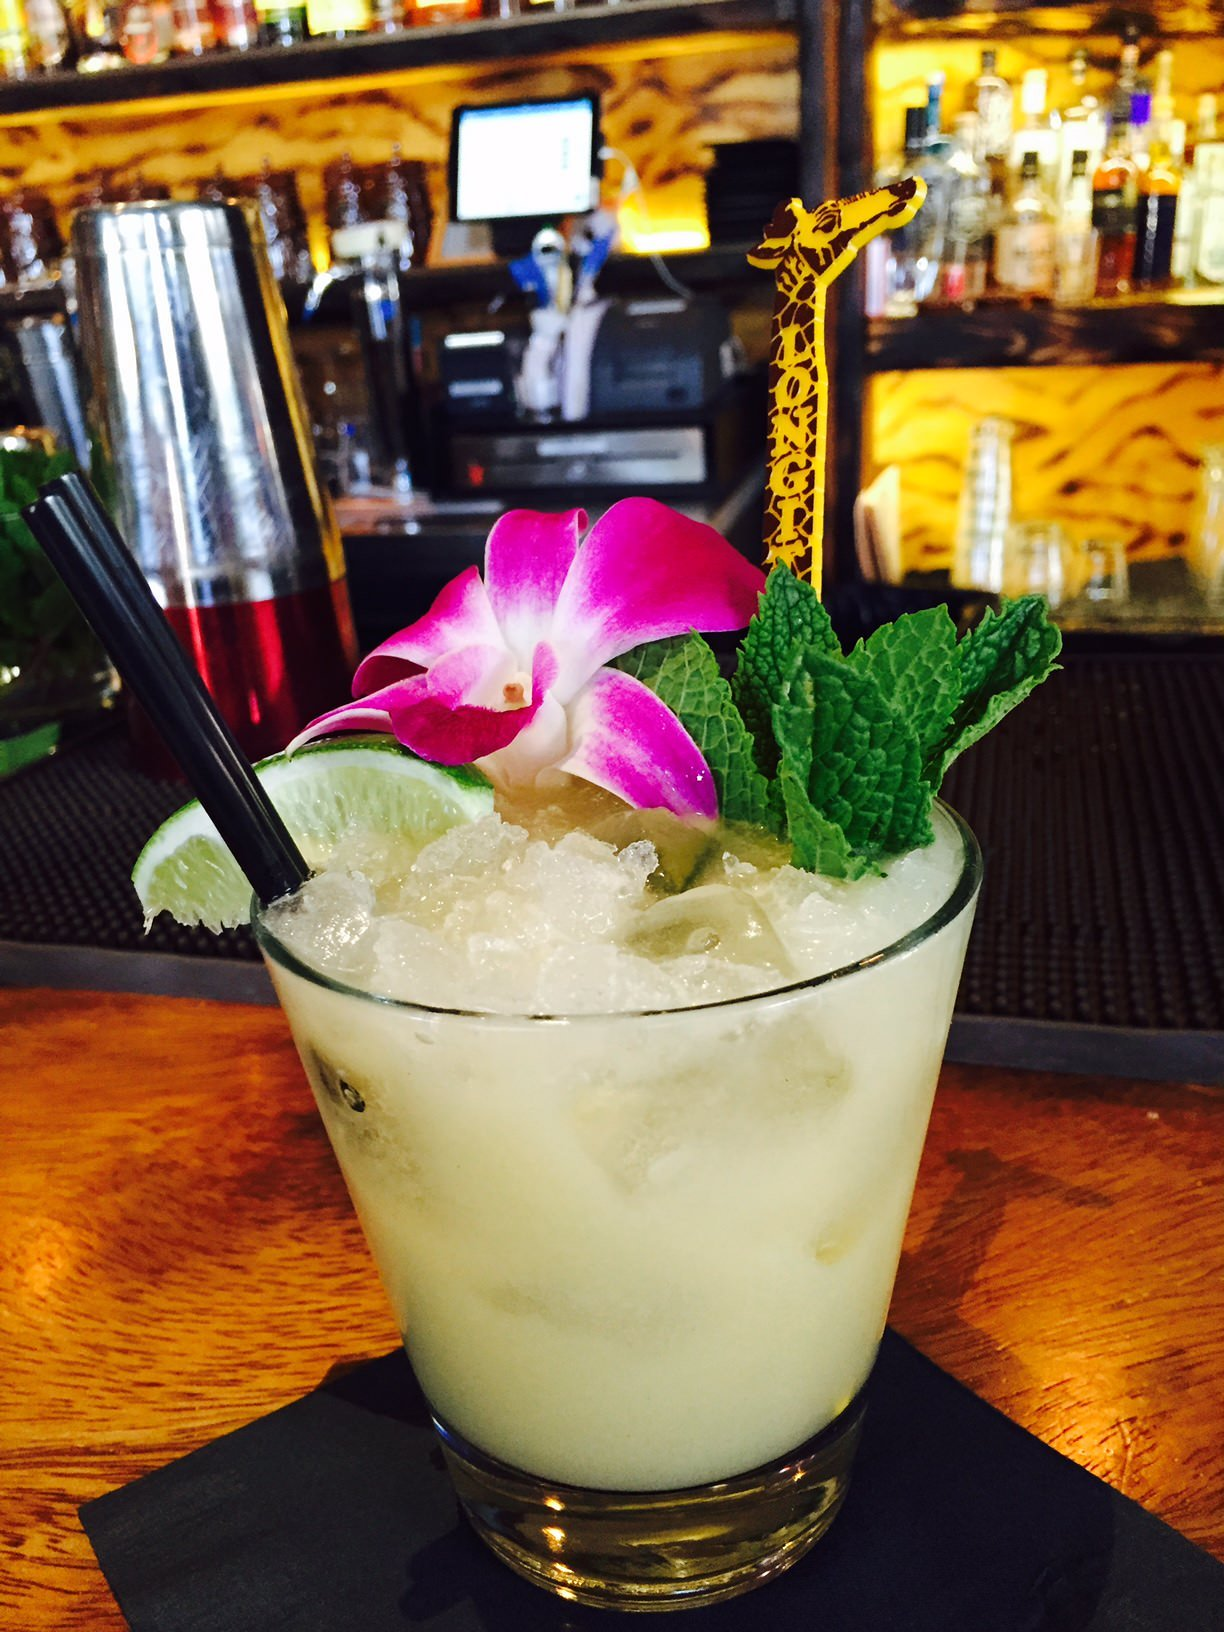 5 best places to drink a mai tai in the bay area i avital tours. Black Bedroom Furniture Sets. Home Design Ideas